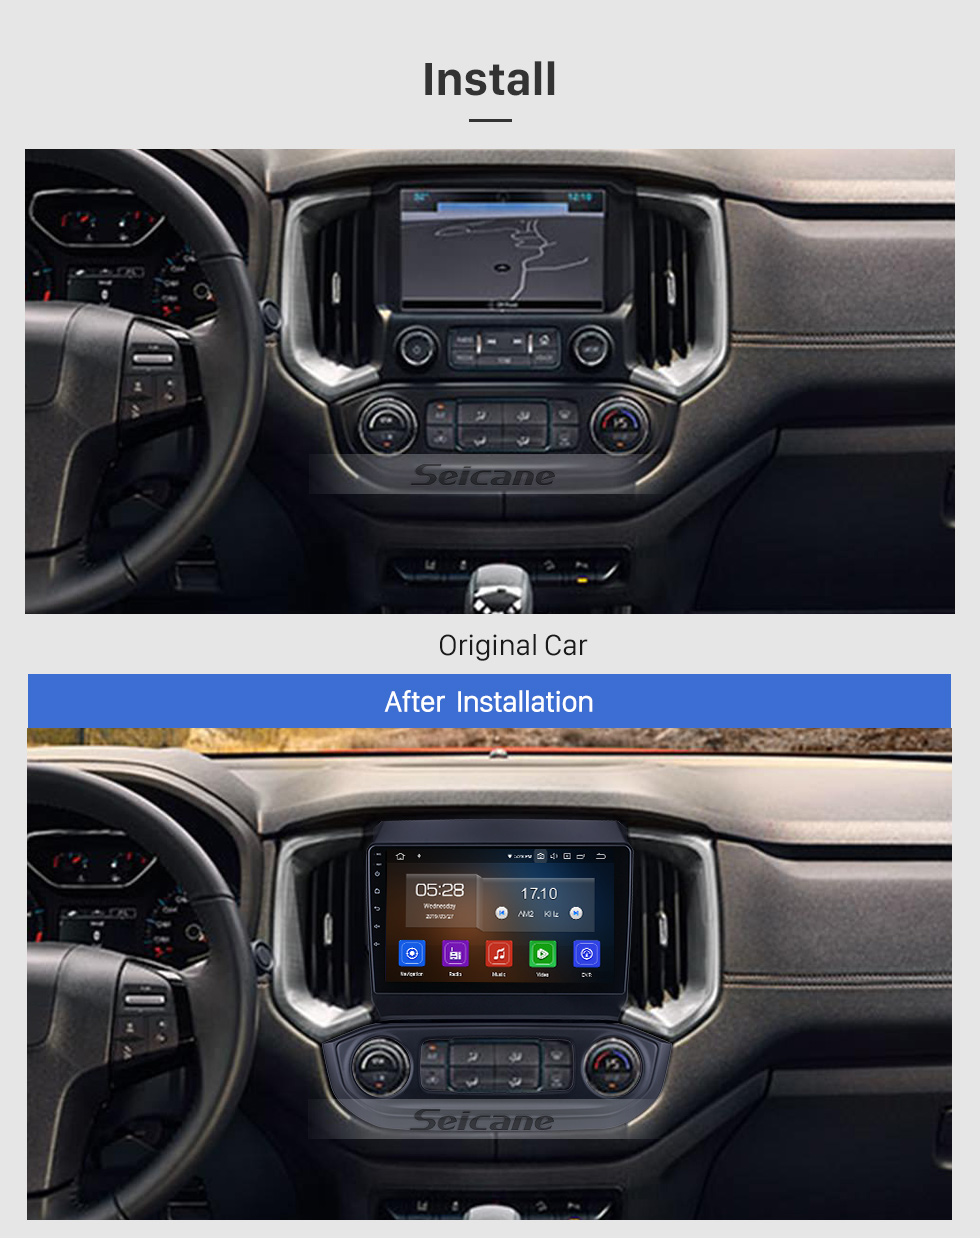 Seicane HD Touchscreen 9 inch Android 10.0 for 2017 Chevy Chevrolet Colorado Radio GPS Navigation System Bluetooth Carplay support Backup camera